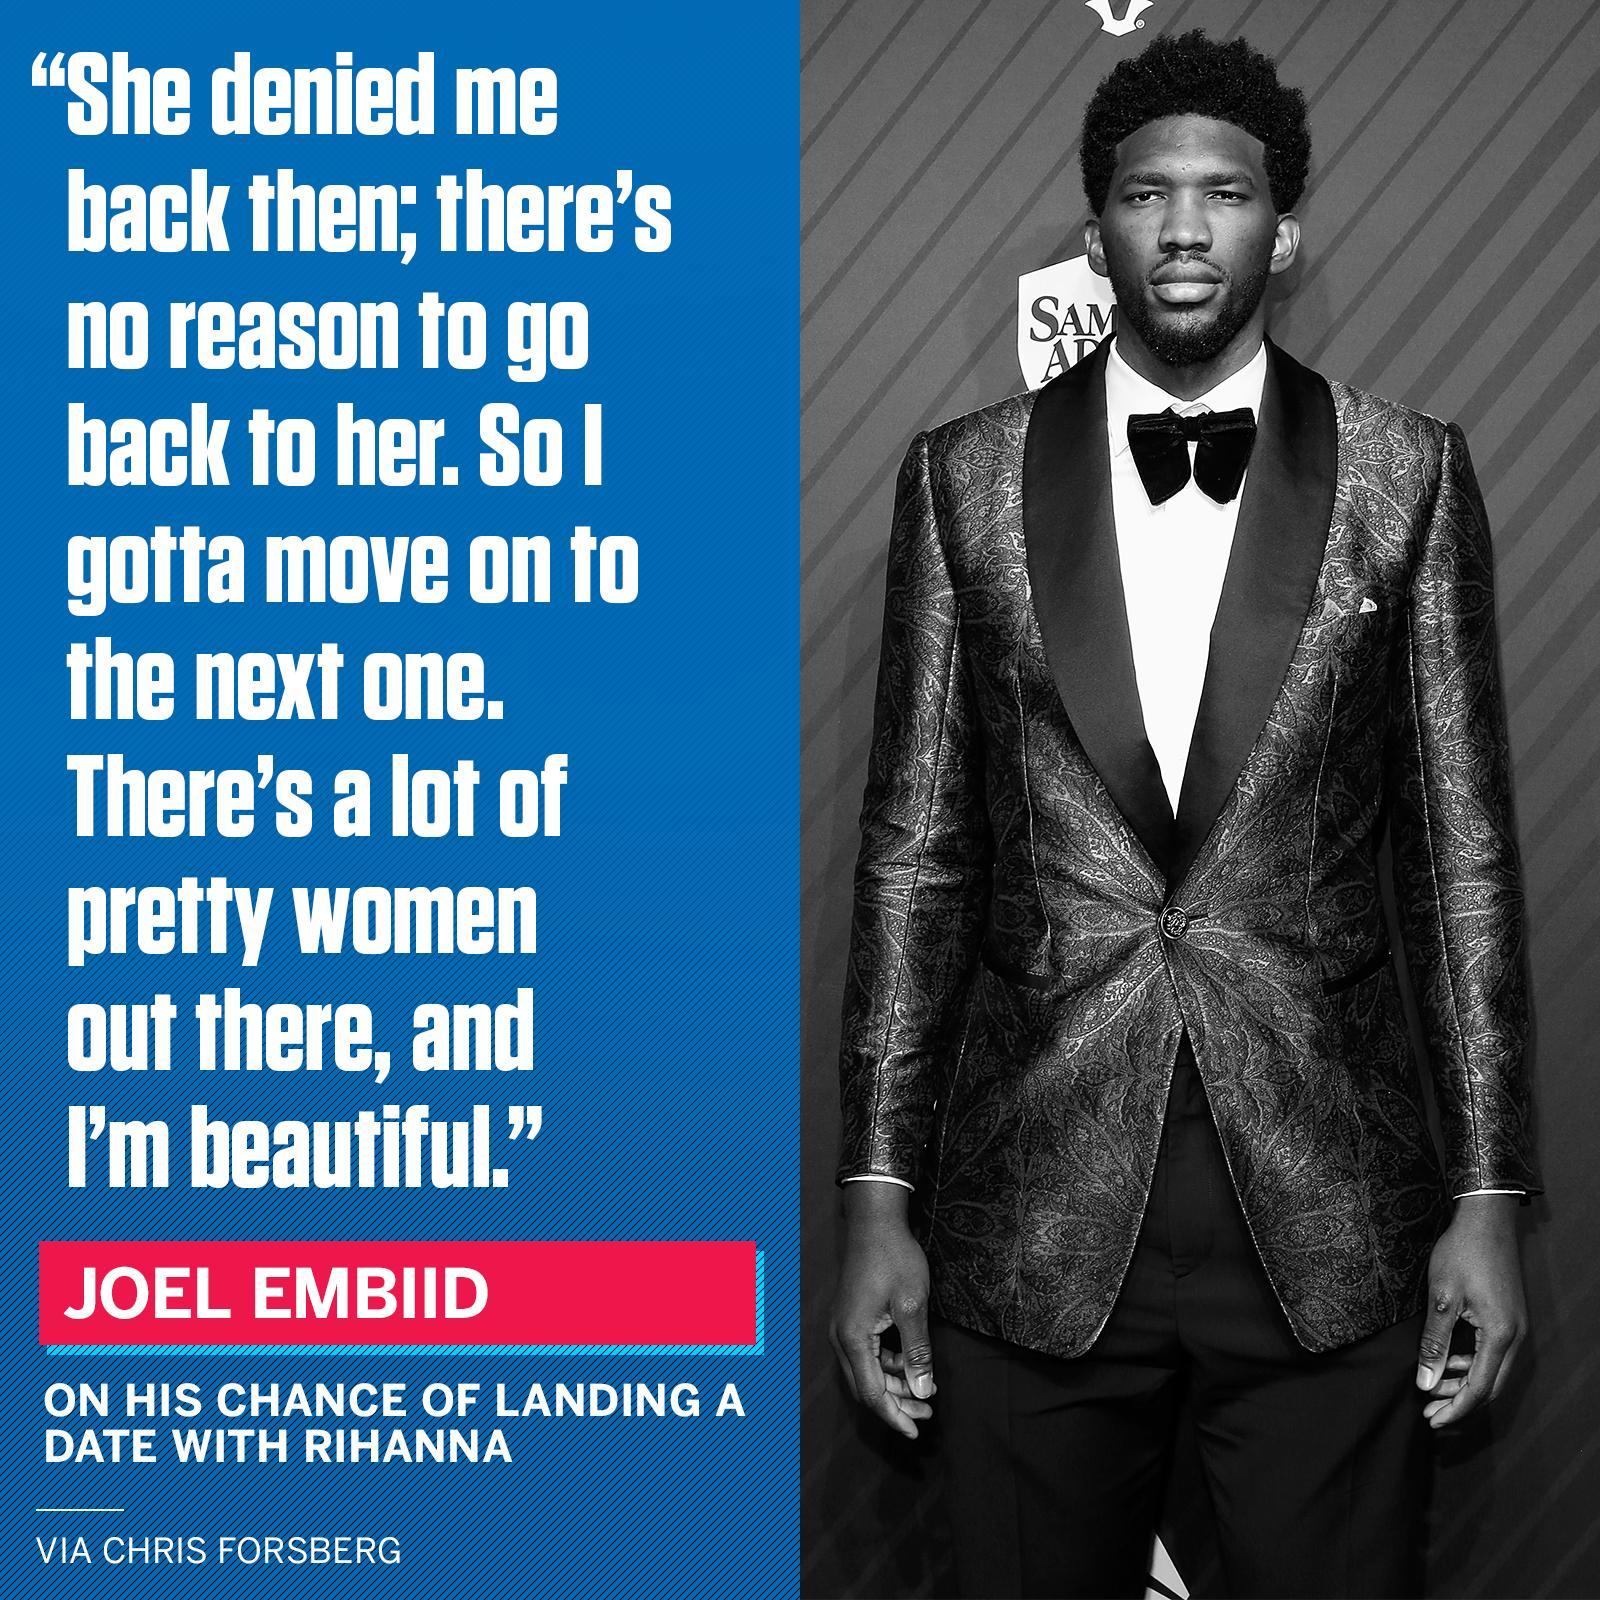 Joel Embiid is on to the next one. https://t.co/5odnokDWtC